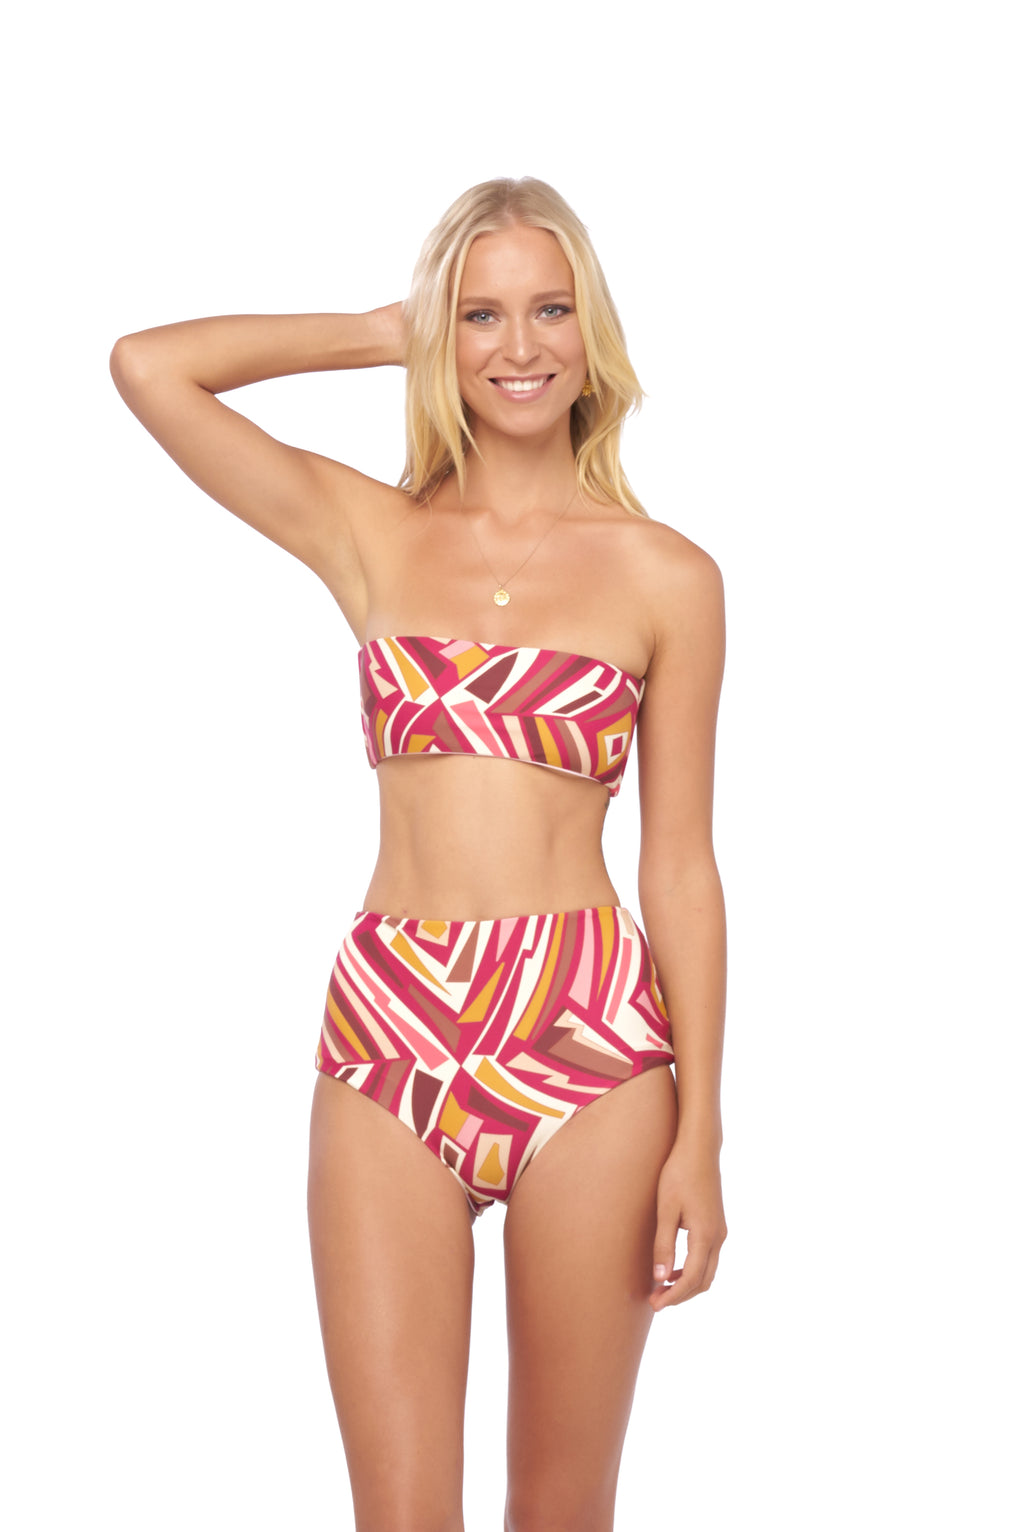 Storm Swimwear - Ravello - Plain Bandeu Bikini Top in Kaleidescope print